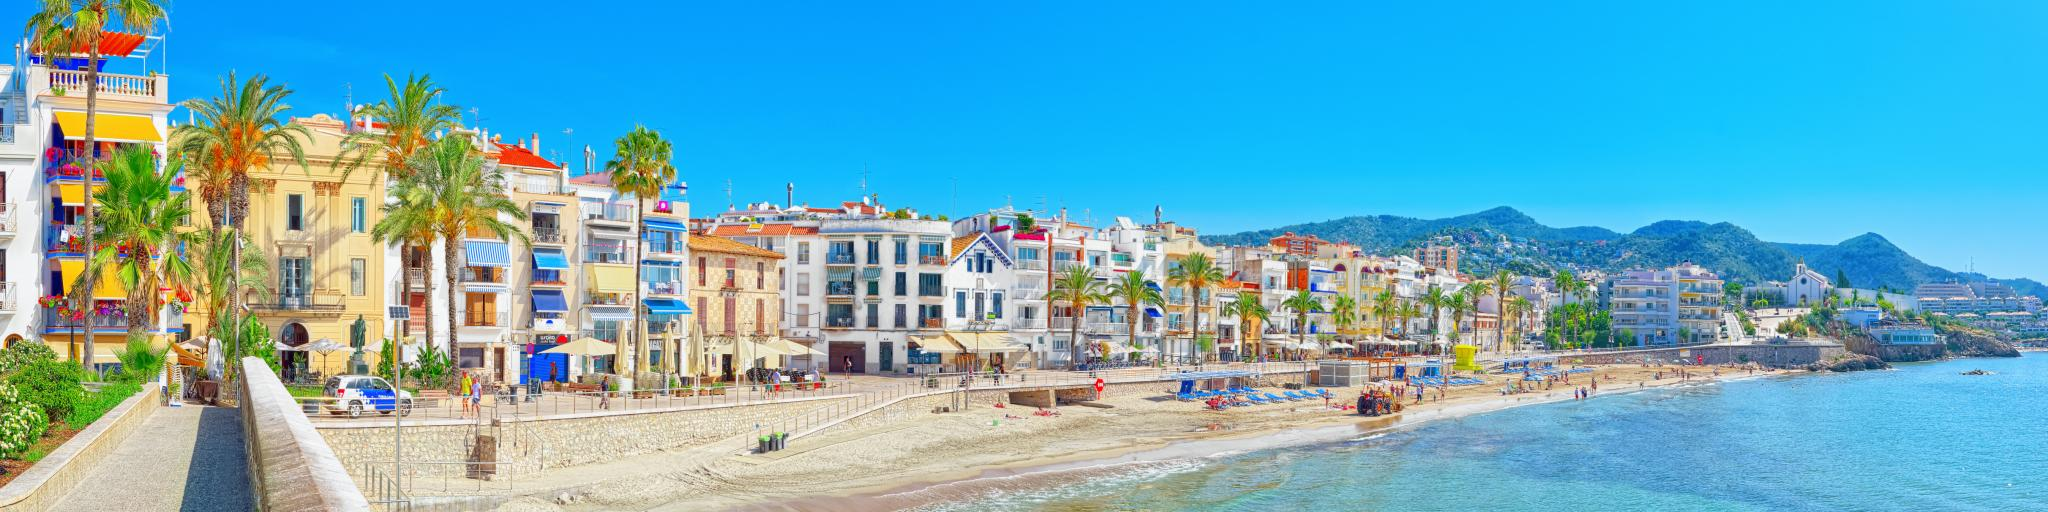 Sitges town and beach is a perfect day trip from Barcelona